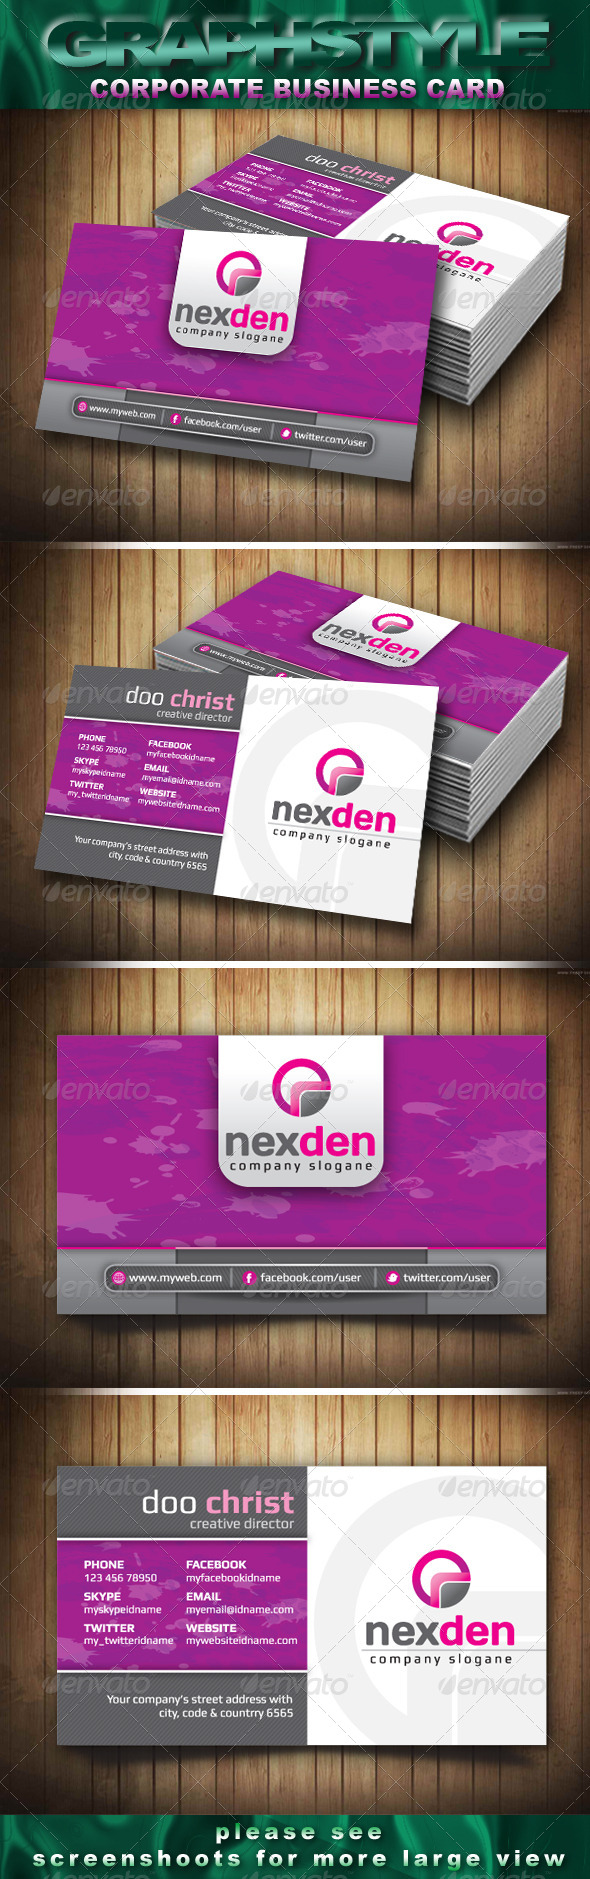 GraphicRiver Nexden Corporate Business Card 4043893